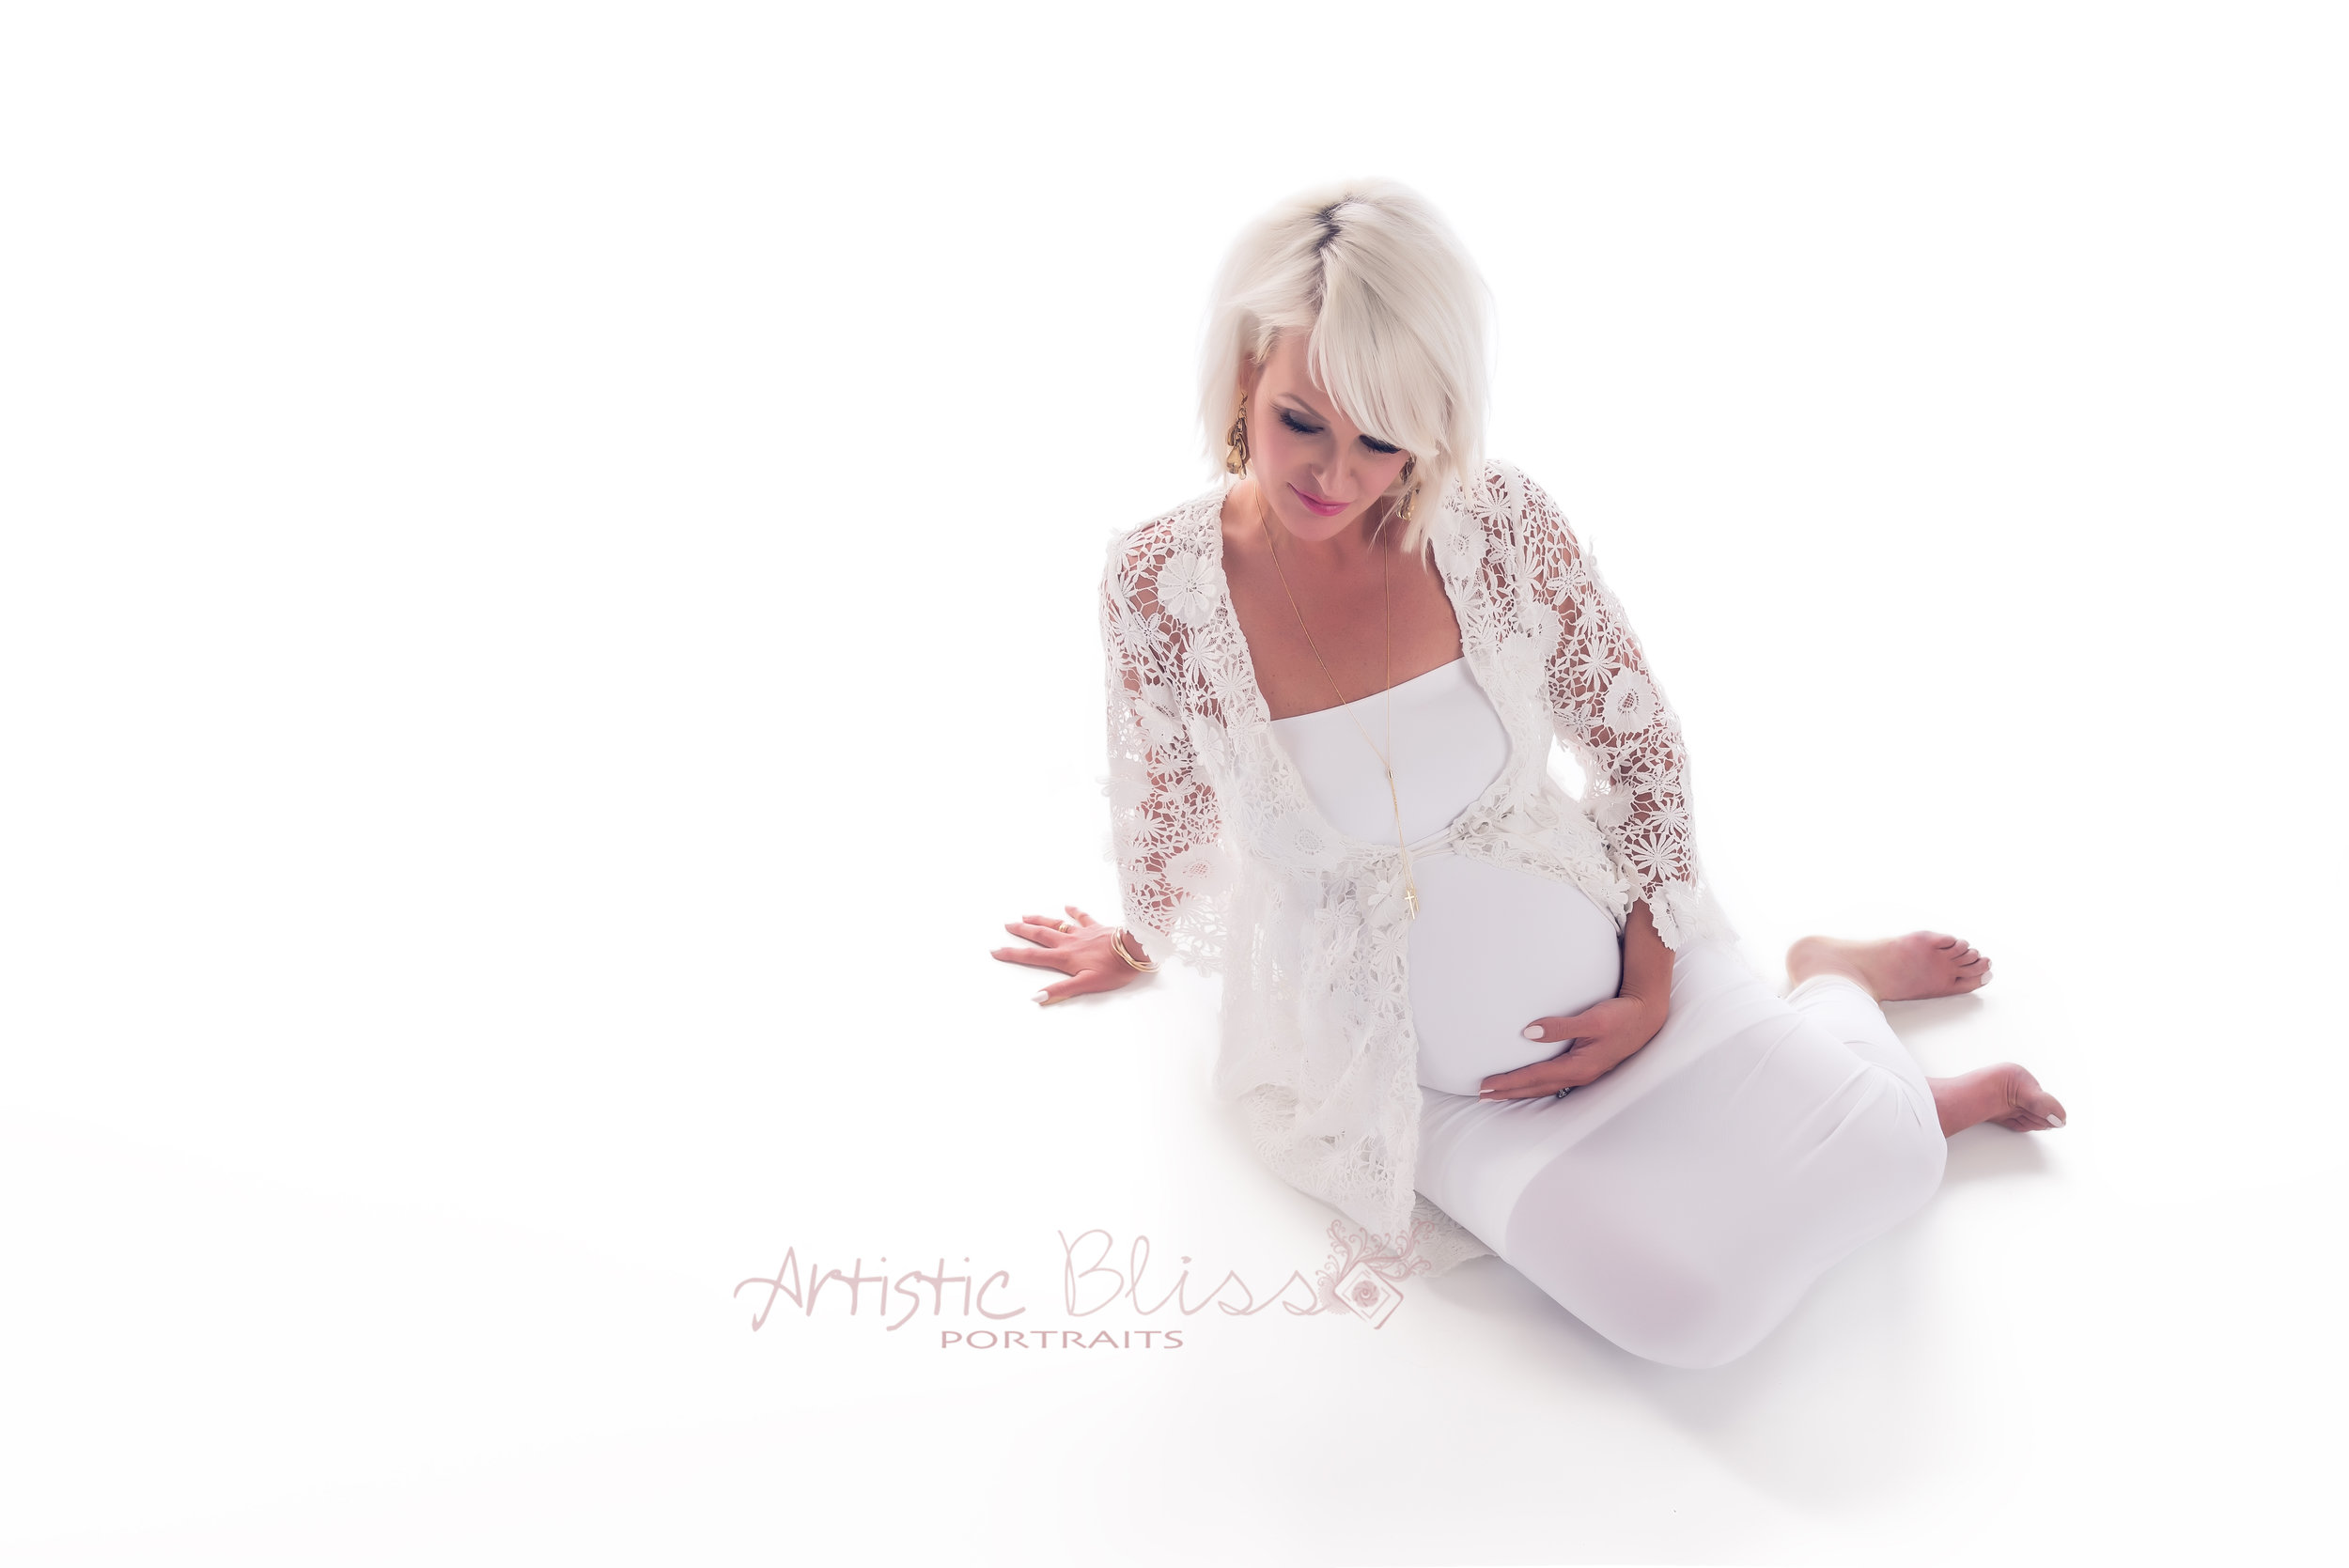 Angelic Maternity Photography